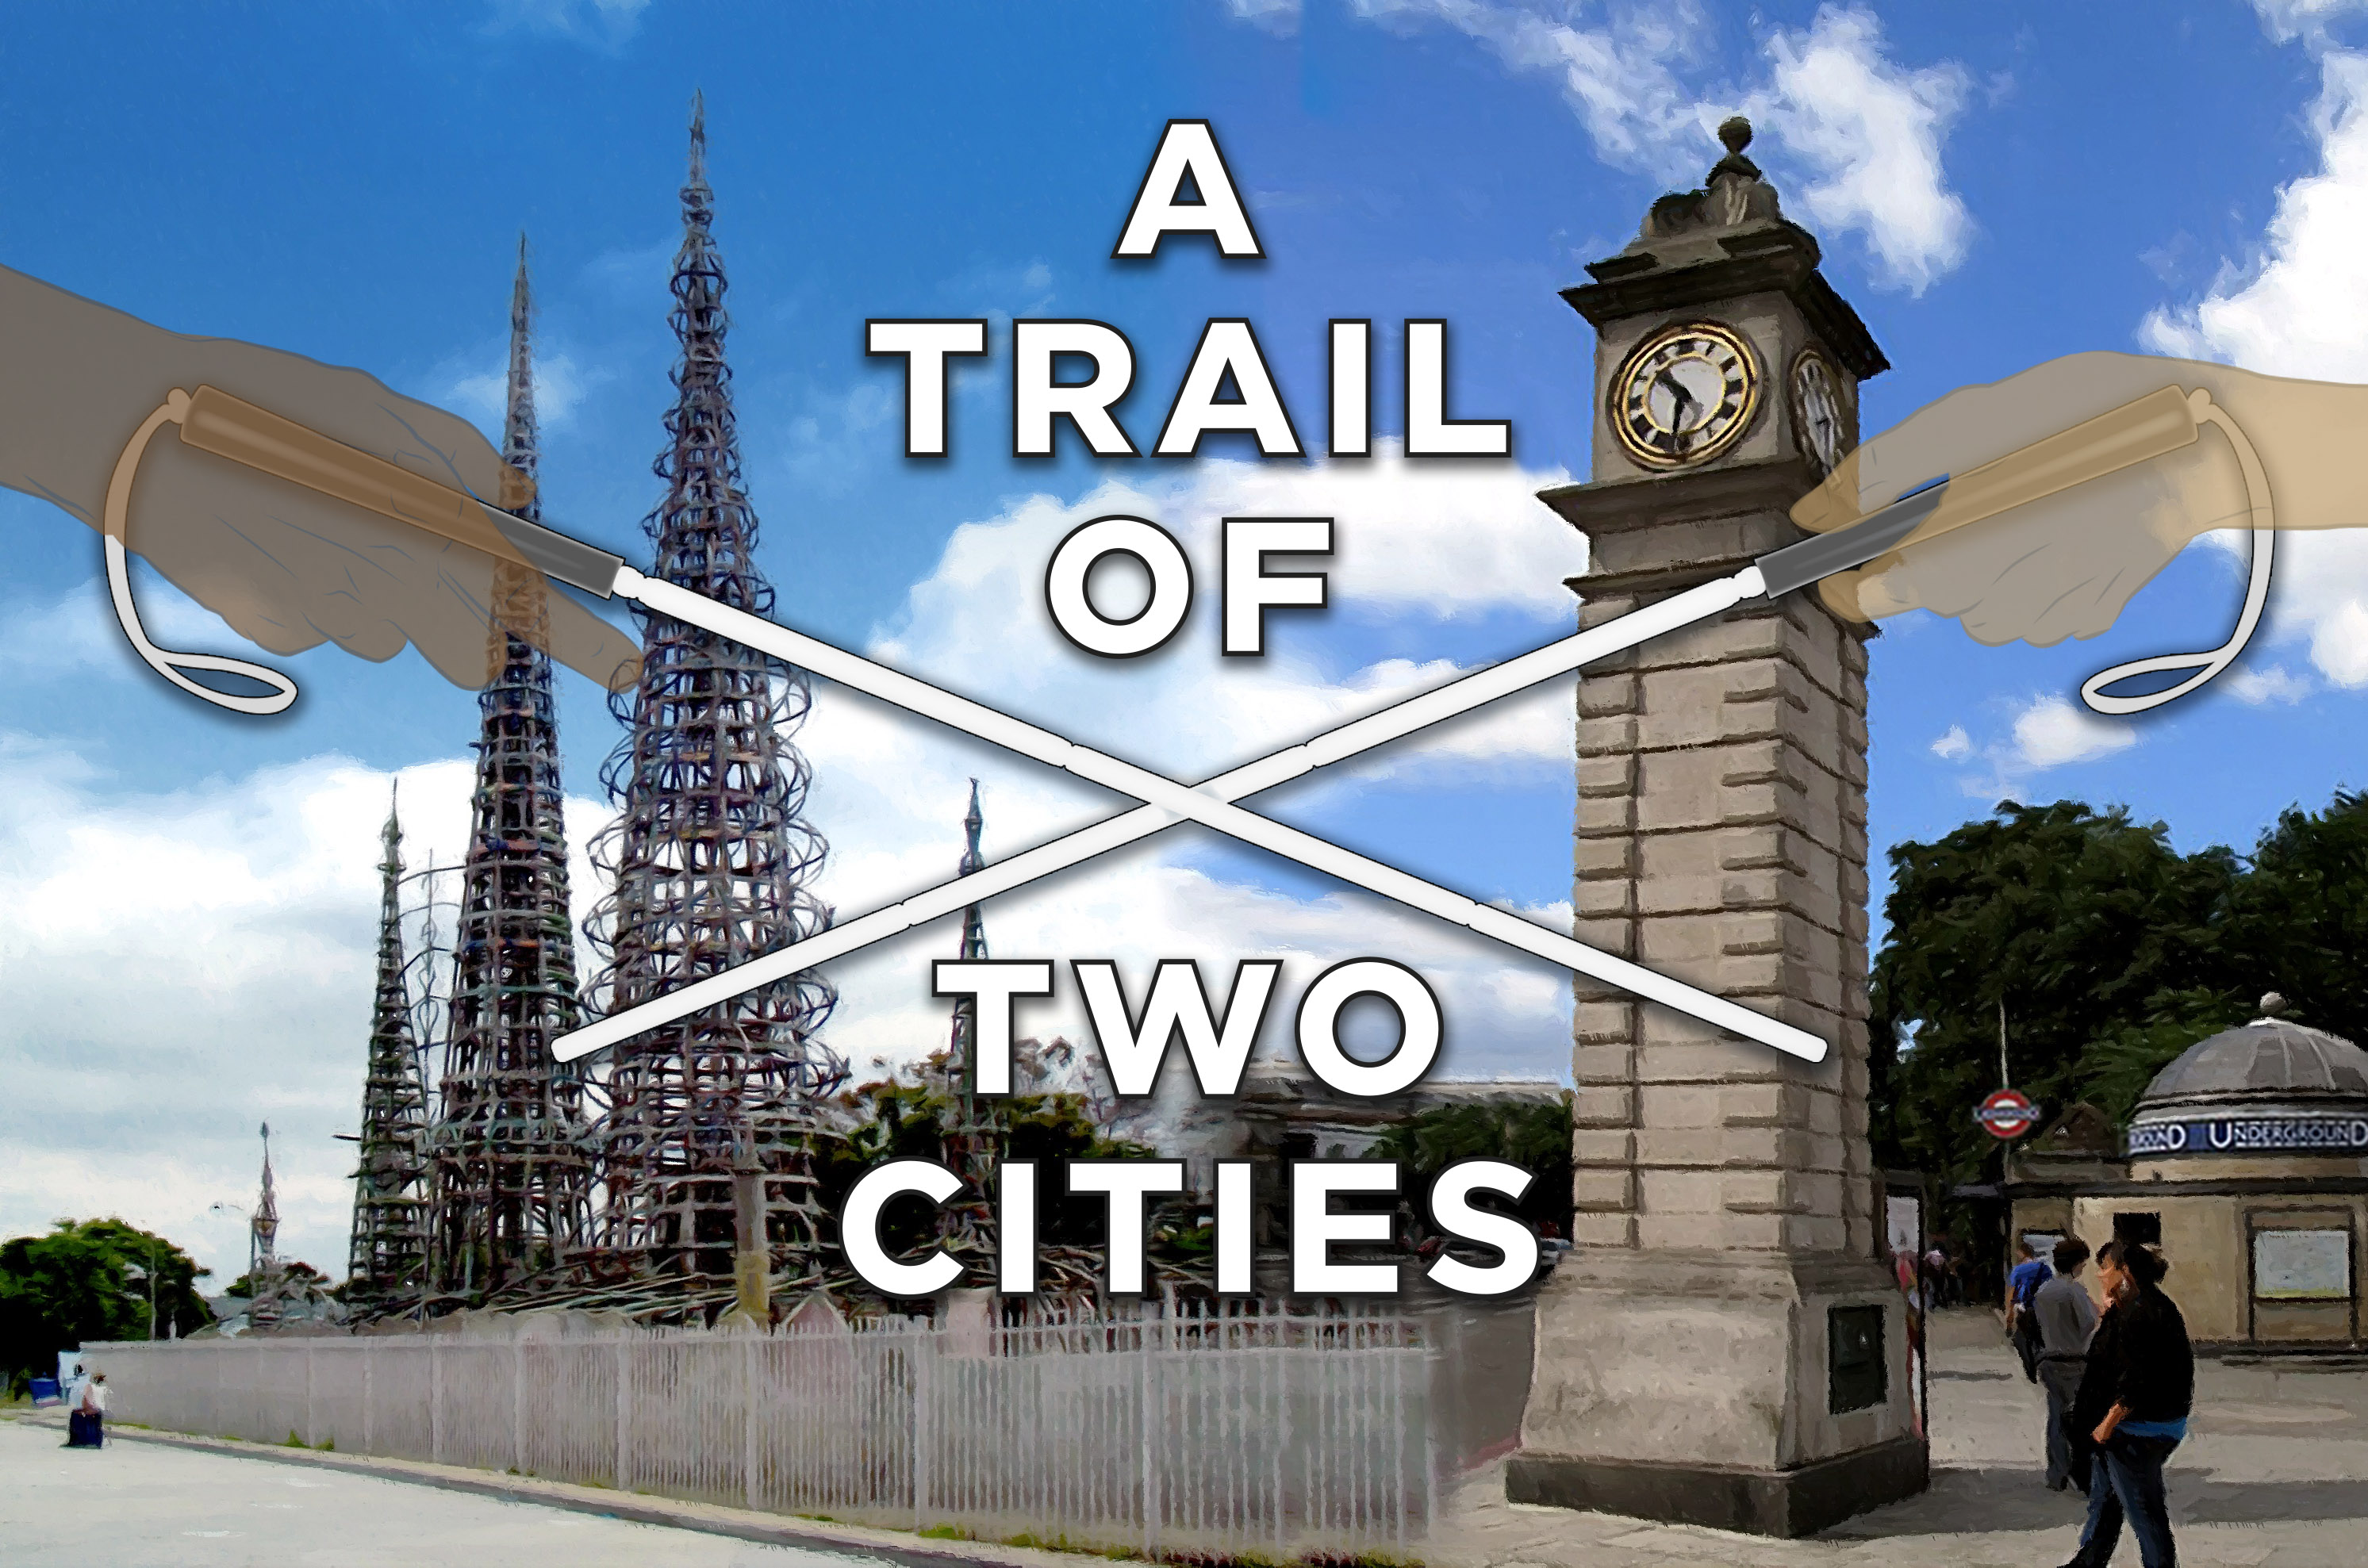 A graphic image of two crossed white canes bisecting an image of the Watts towers in Los Angeles on the left, and Clapham Common tube station's Clock tower on the right, with the title 'A Trail of Two Cities' in the middle of the canes.